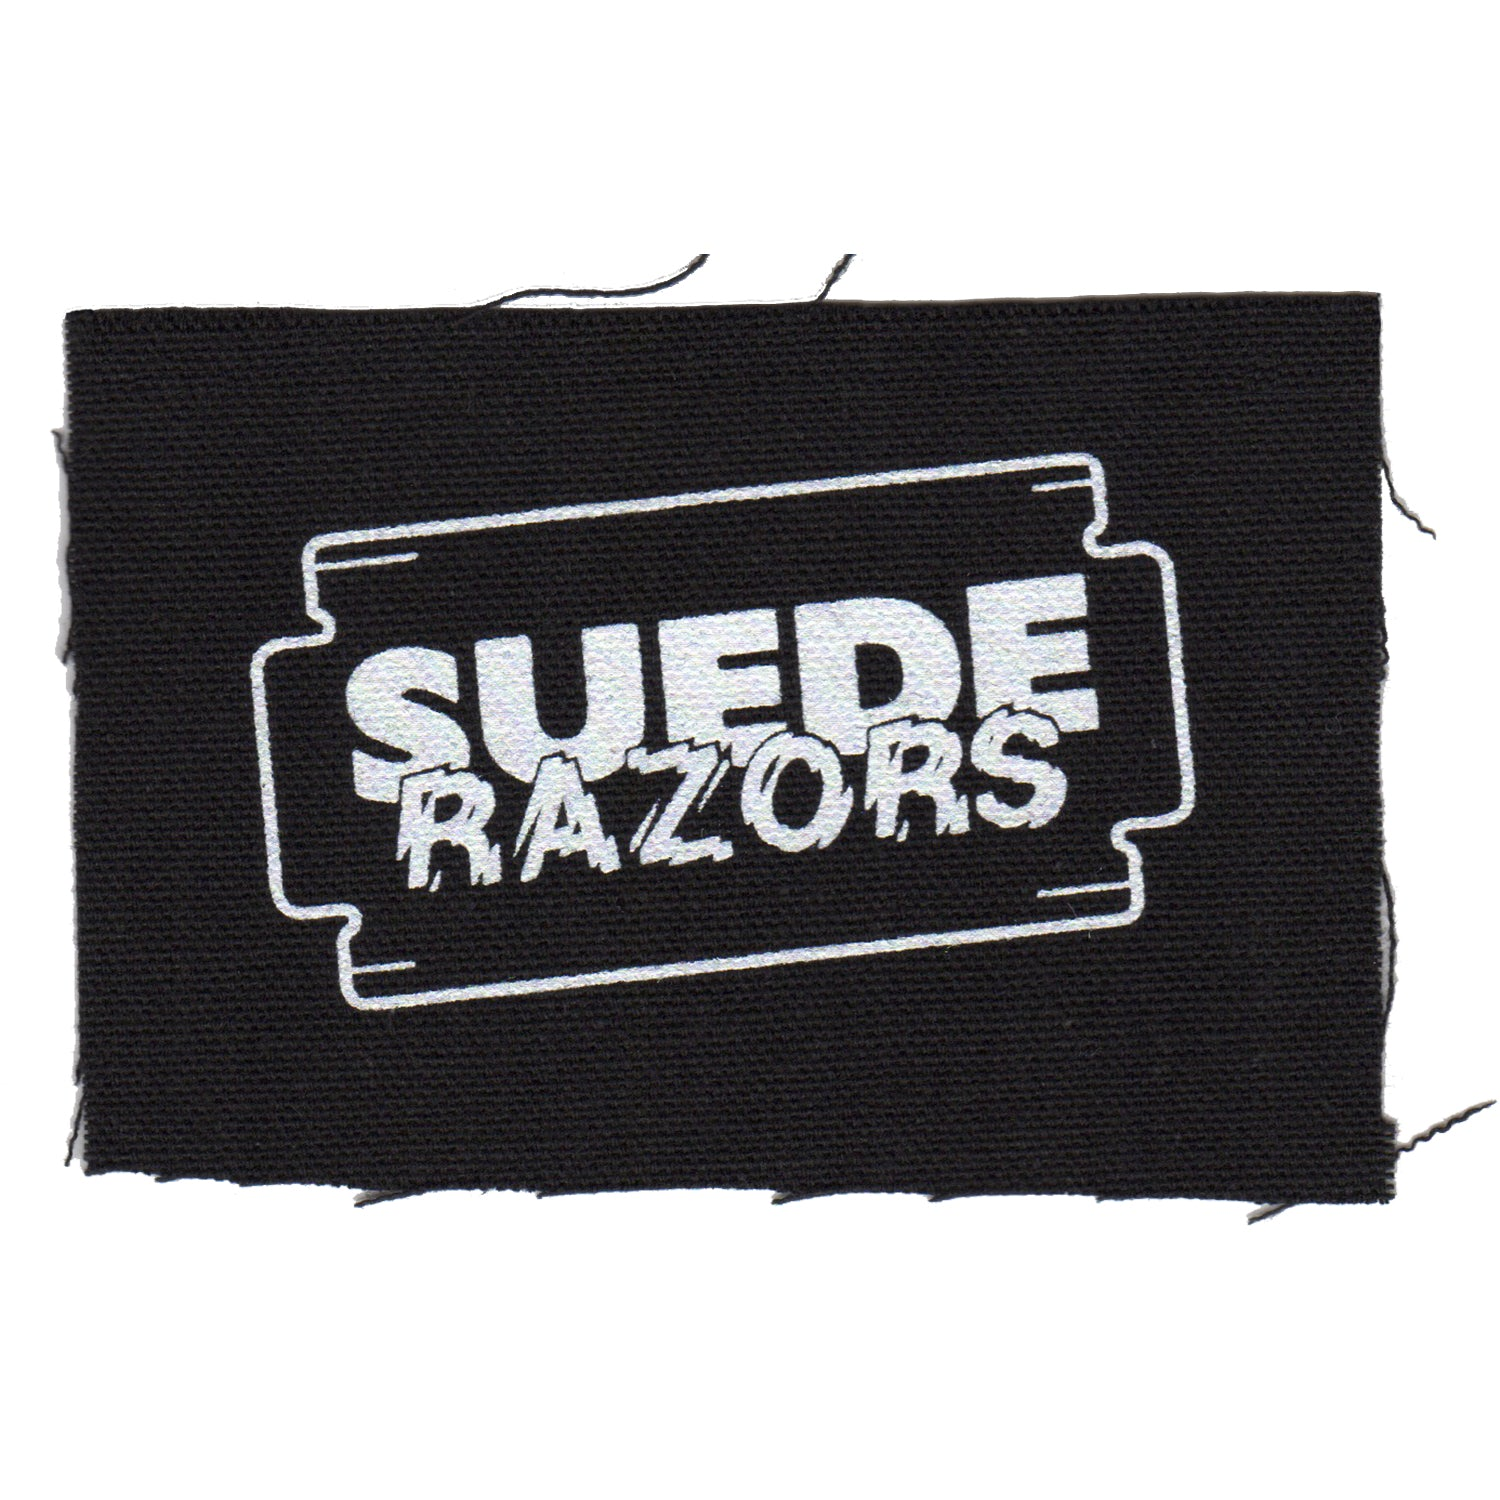 "Suede Razors - Logo - Black - Patch - Cloth - Screenprinted - 4"" x 4"""